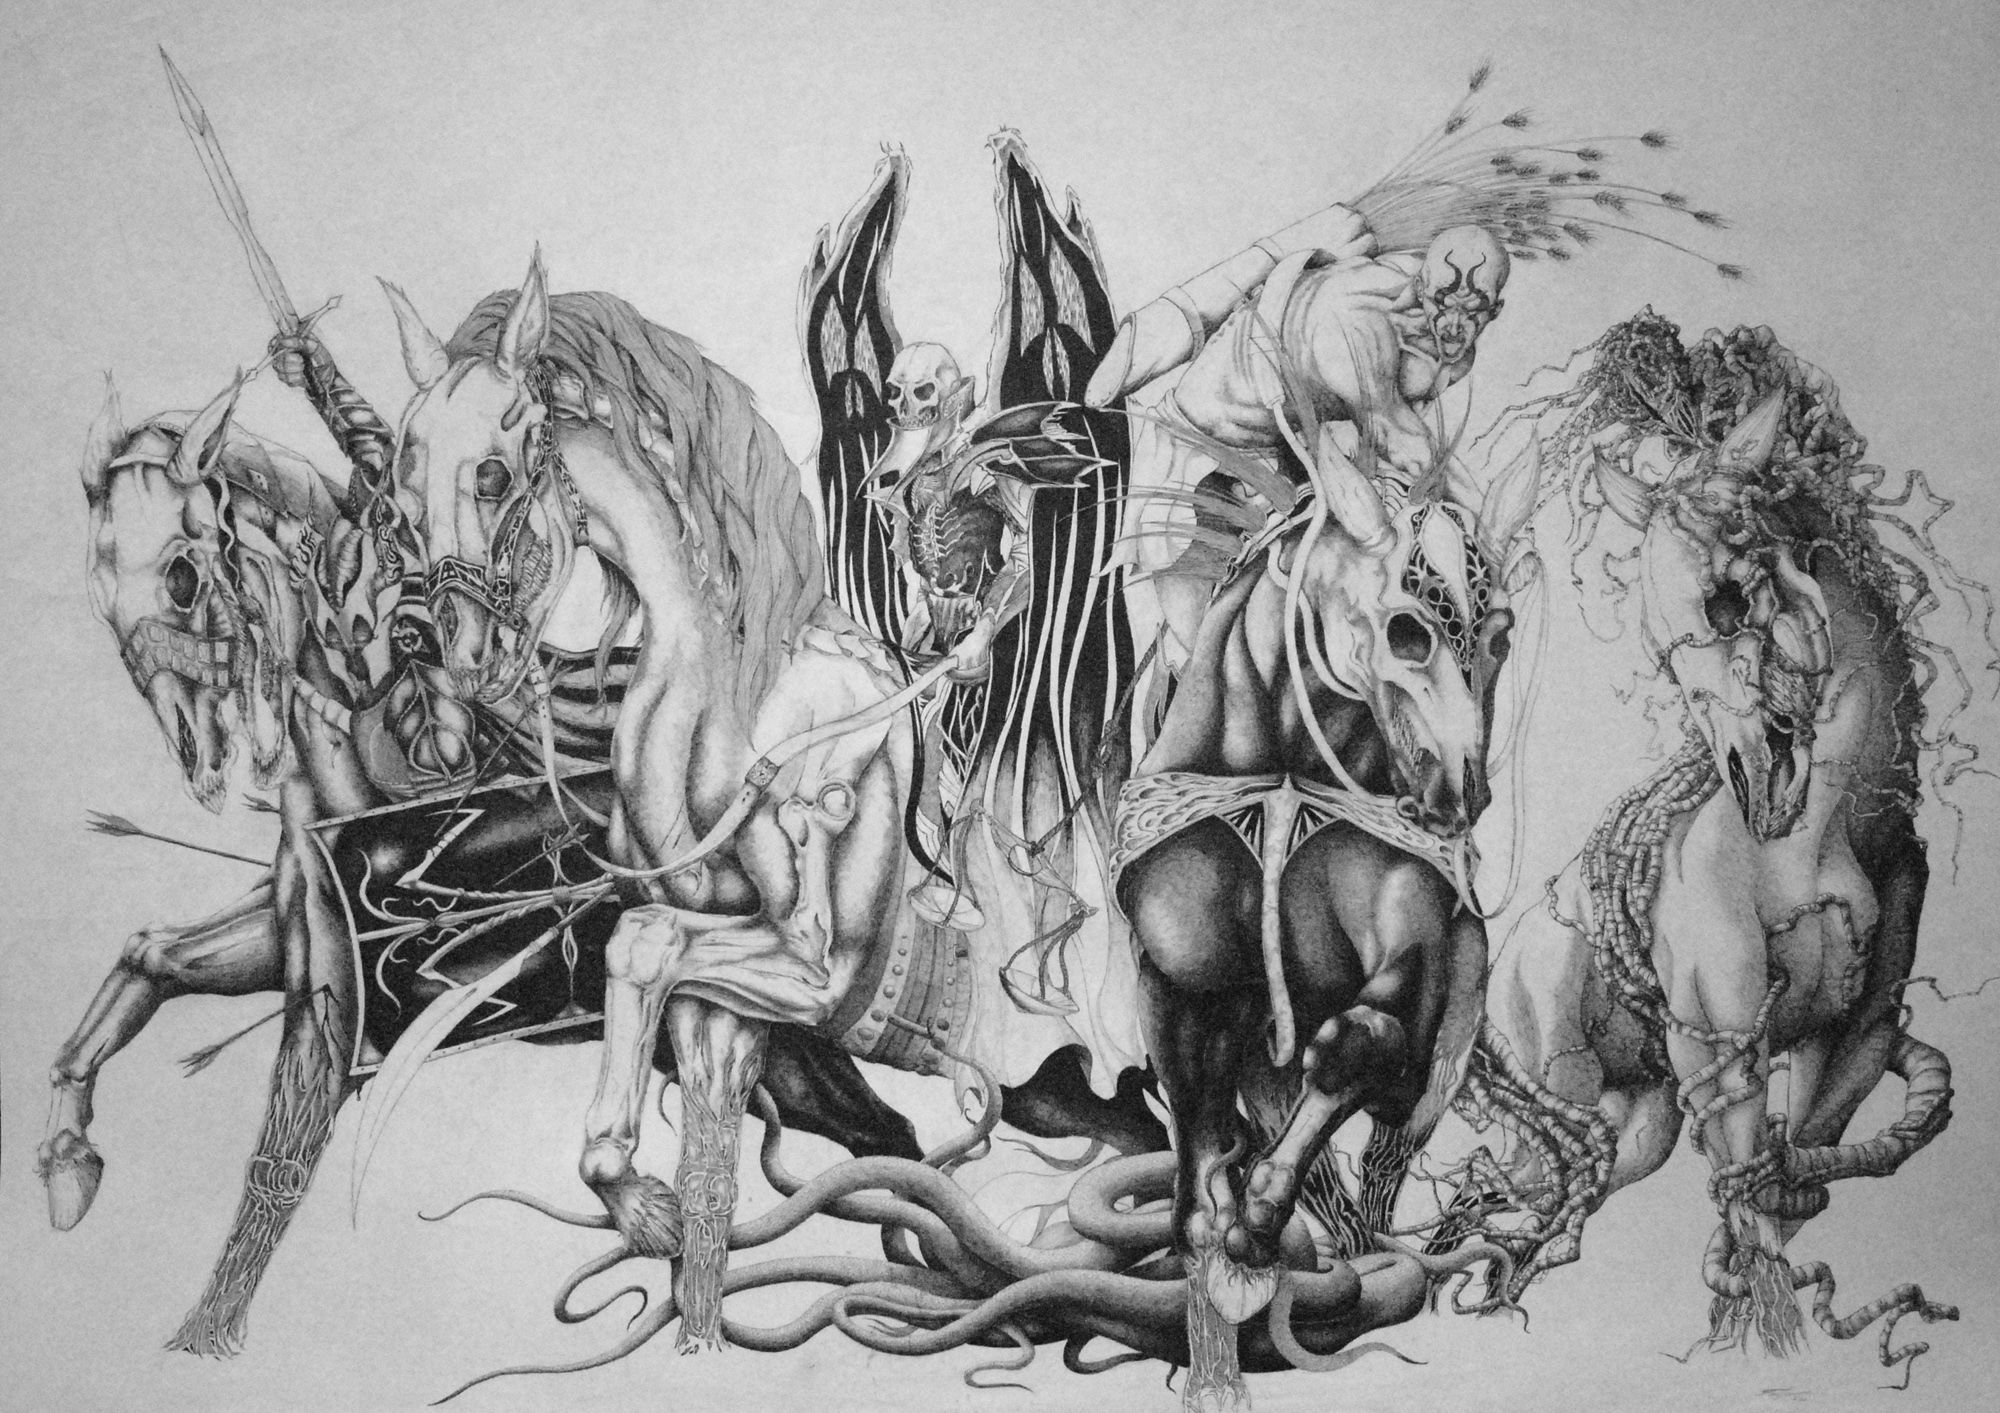 The 4 Horsemen in Bible   respectfully refer to the seven 7